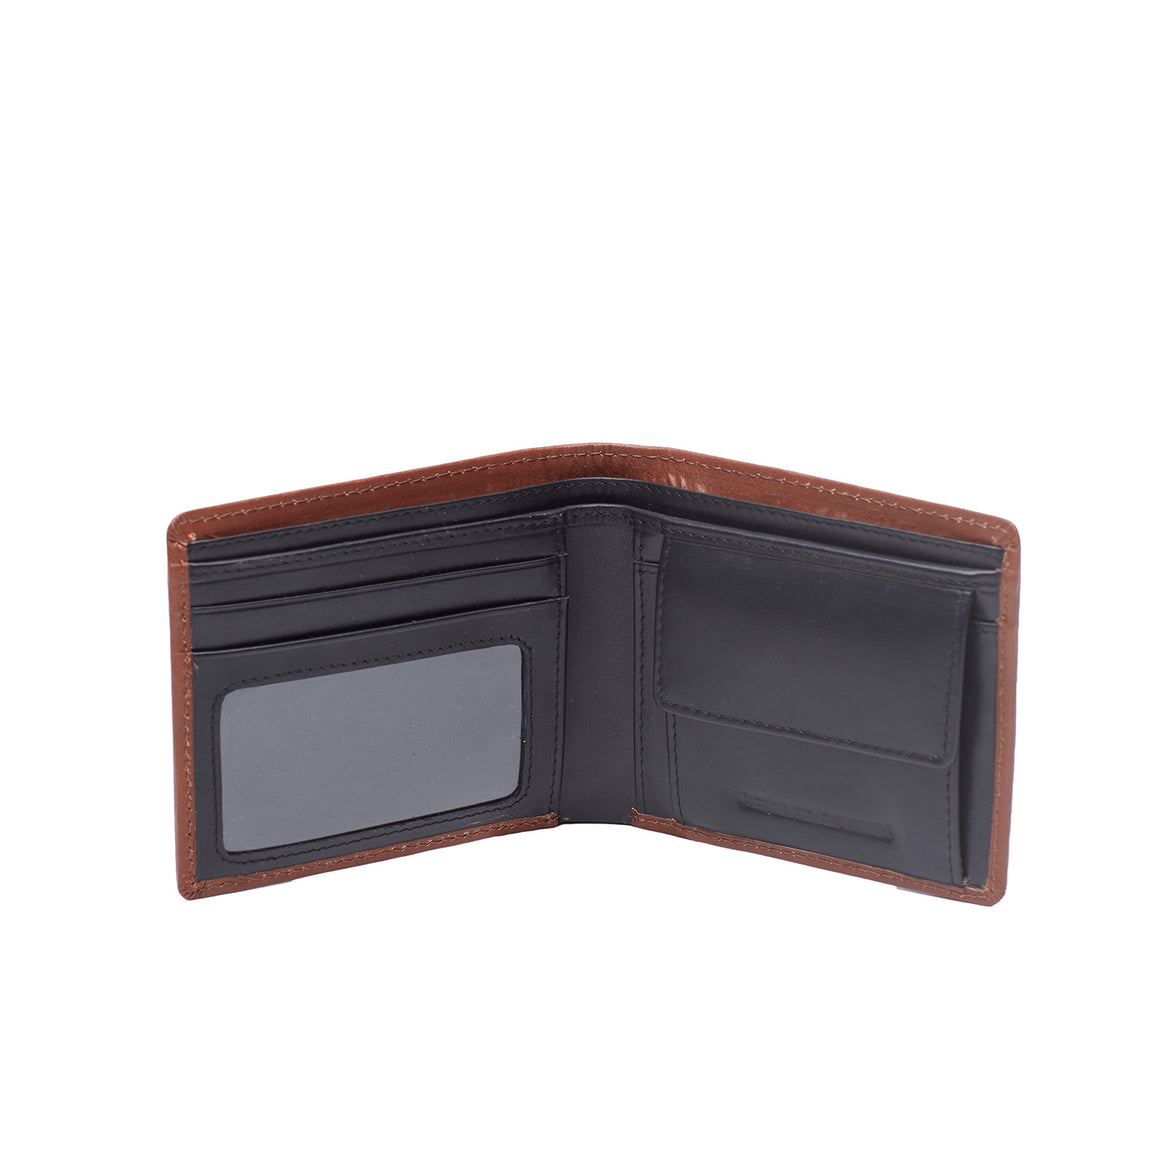 WT 0029 - TOHL BORGO MEN'S WALLET - VINTAGE TAN